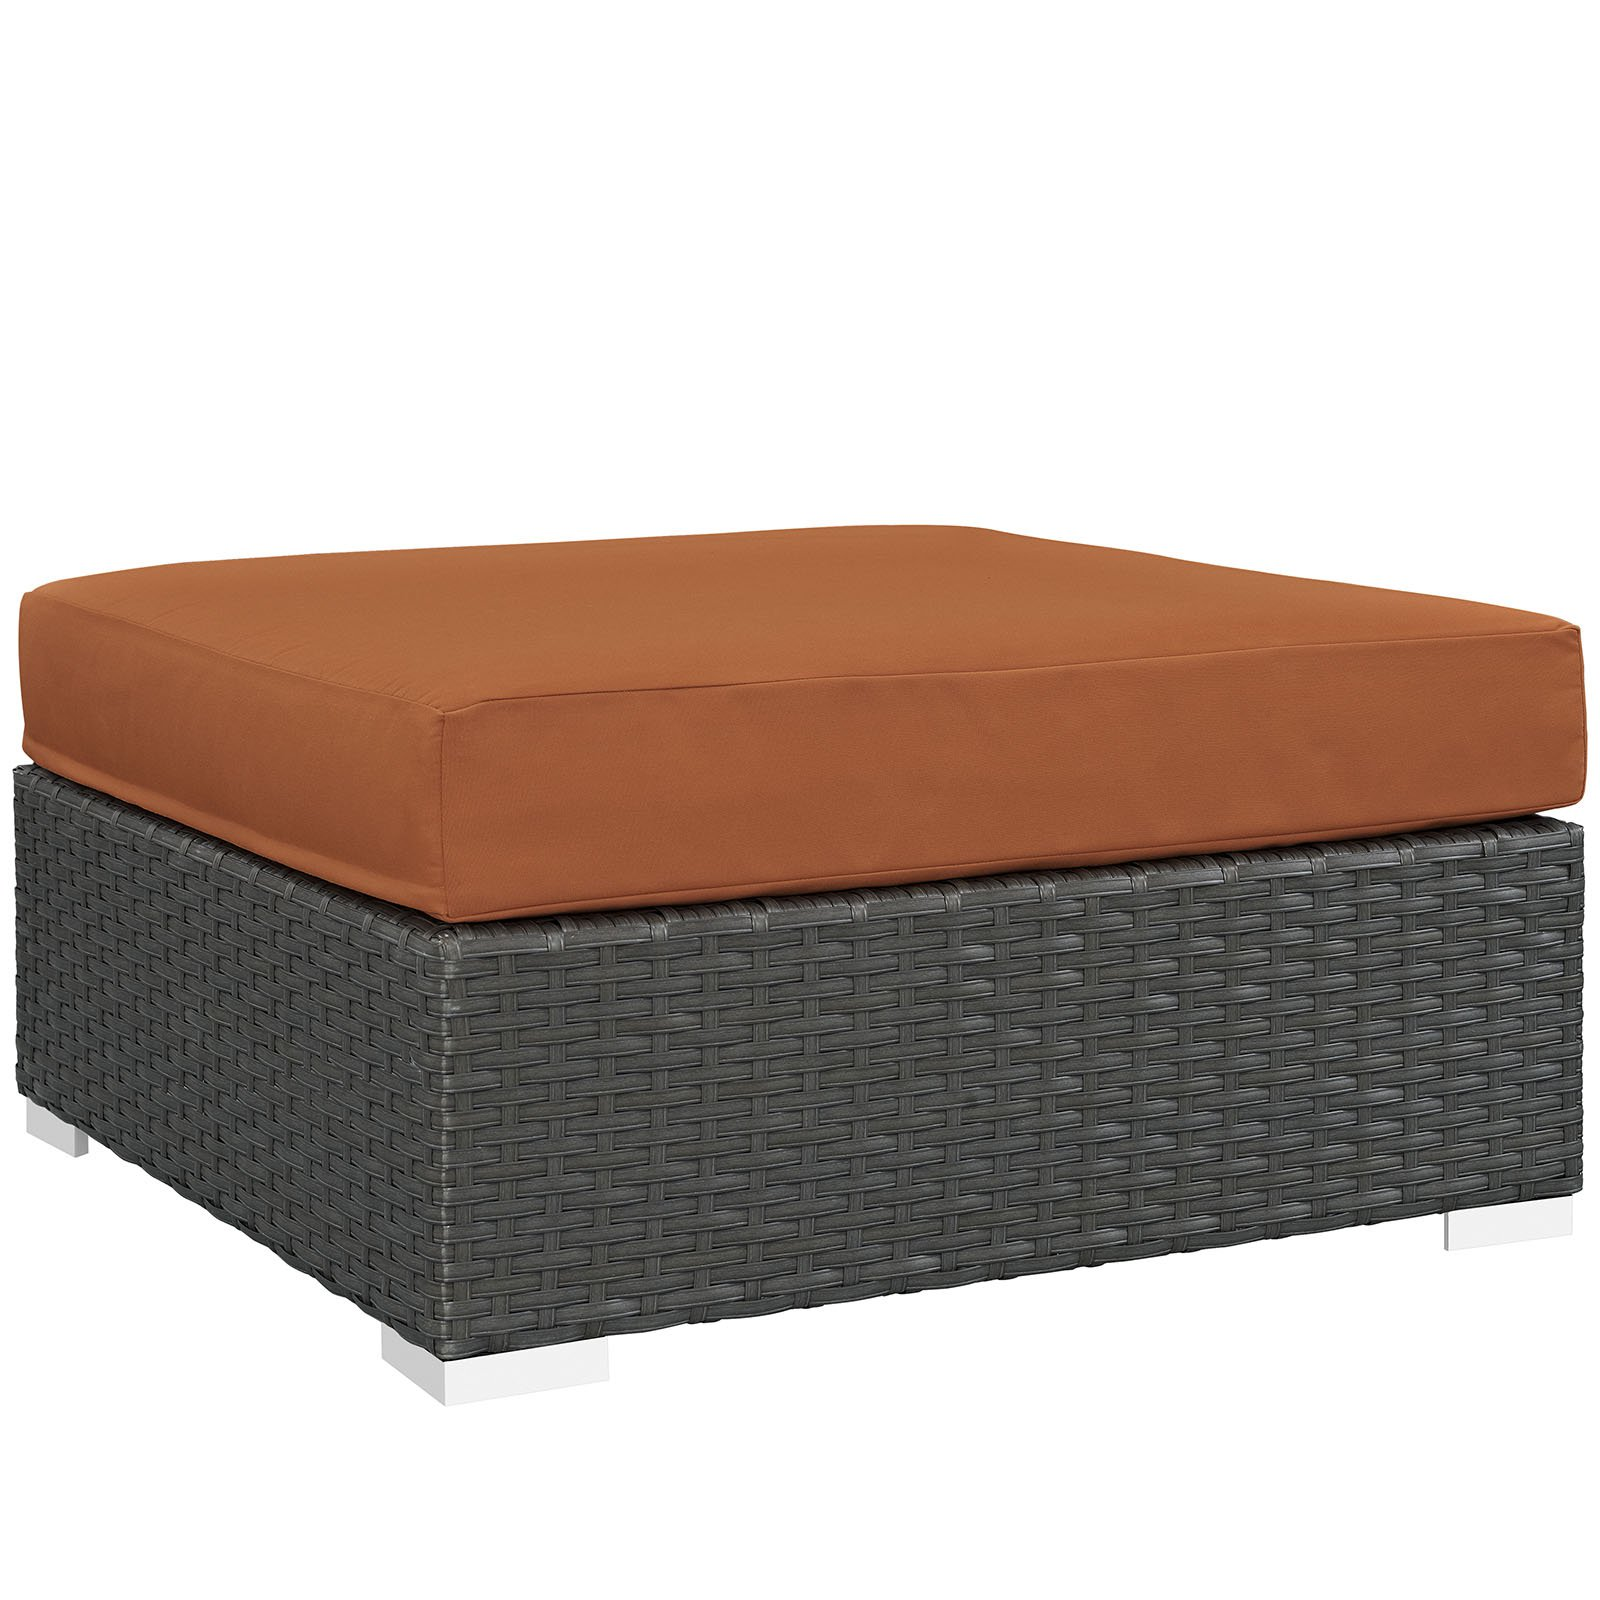 Modway Sojourn Outdoor Patio Sunbrella Square Ottoman, Multiple Colors